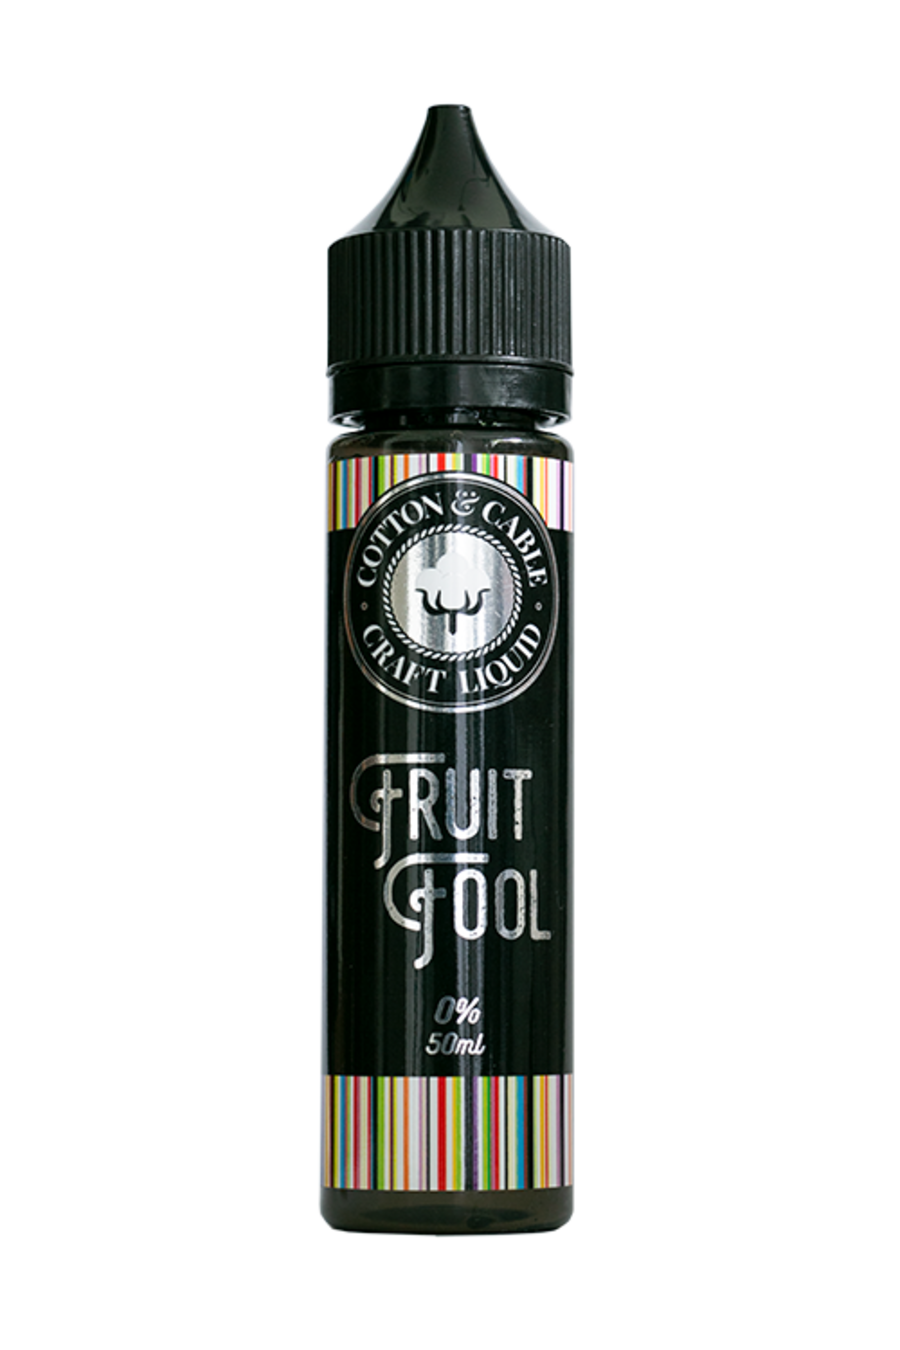 Fruit Fool By Cotton and Cable 50ml Shortfill